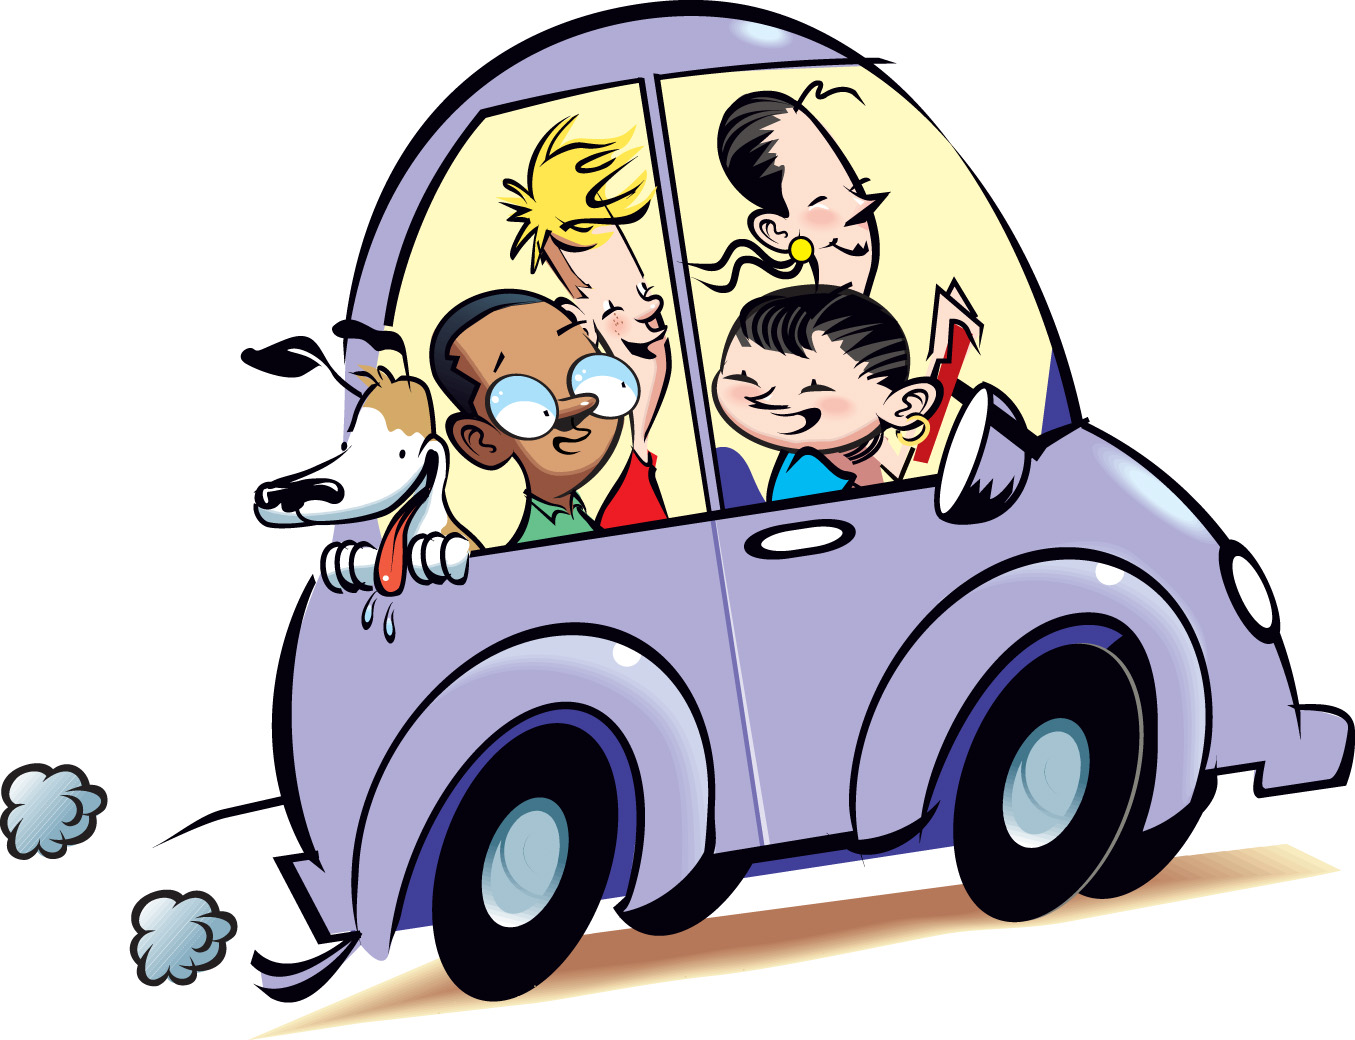 Blue Car clipart car ride Panda Primary Car Family Images